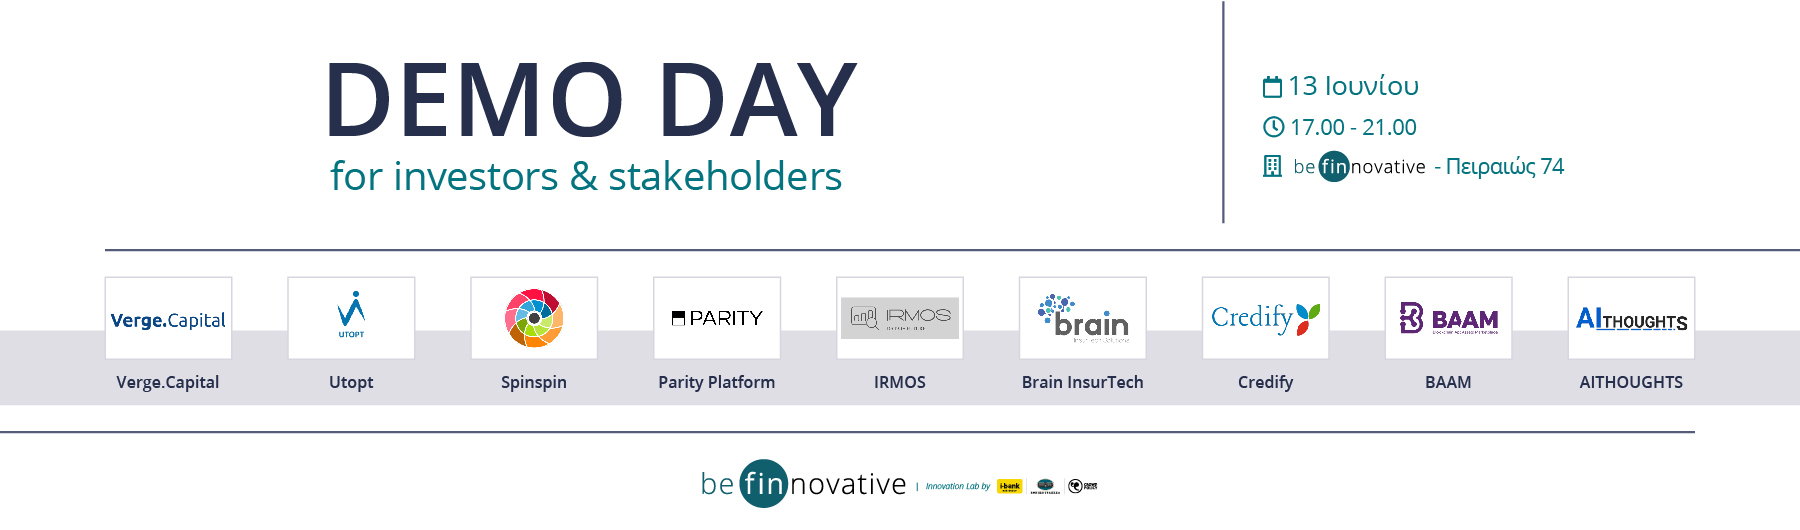 be finnovative 3.0 - Demo Day